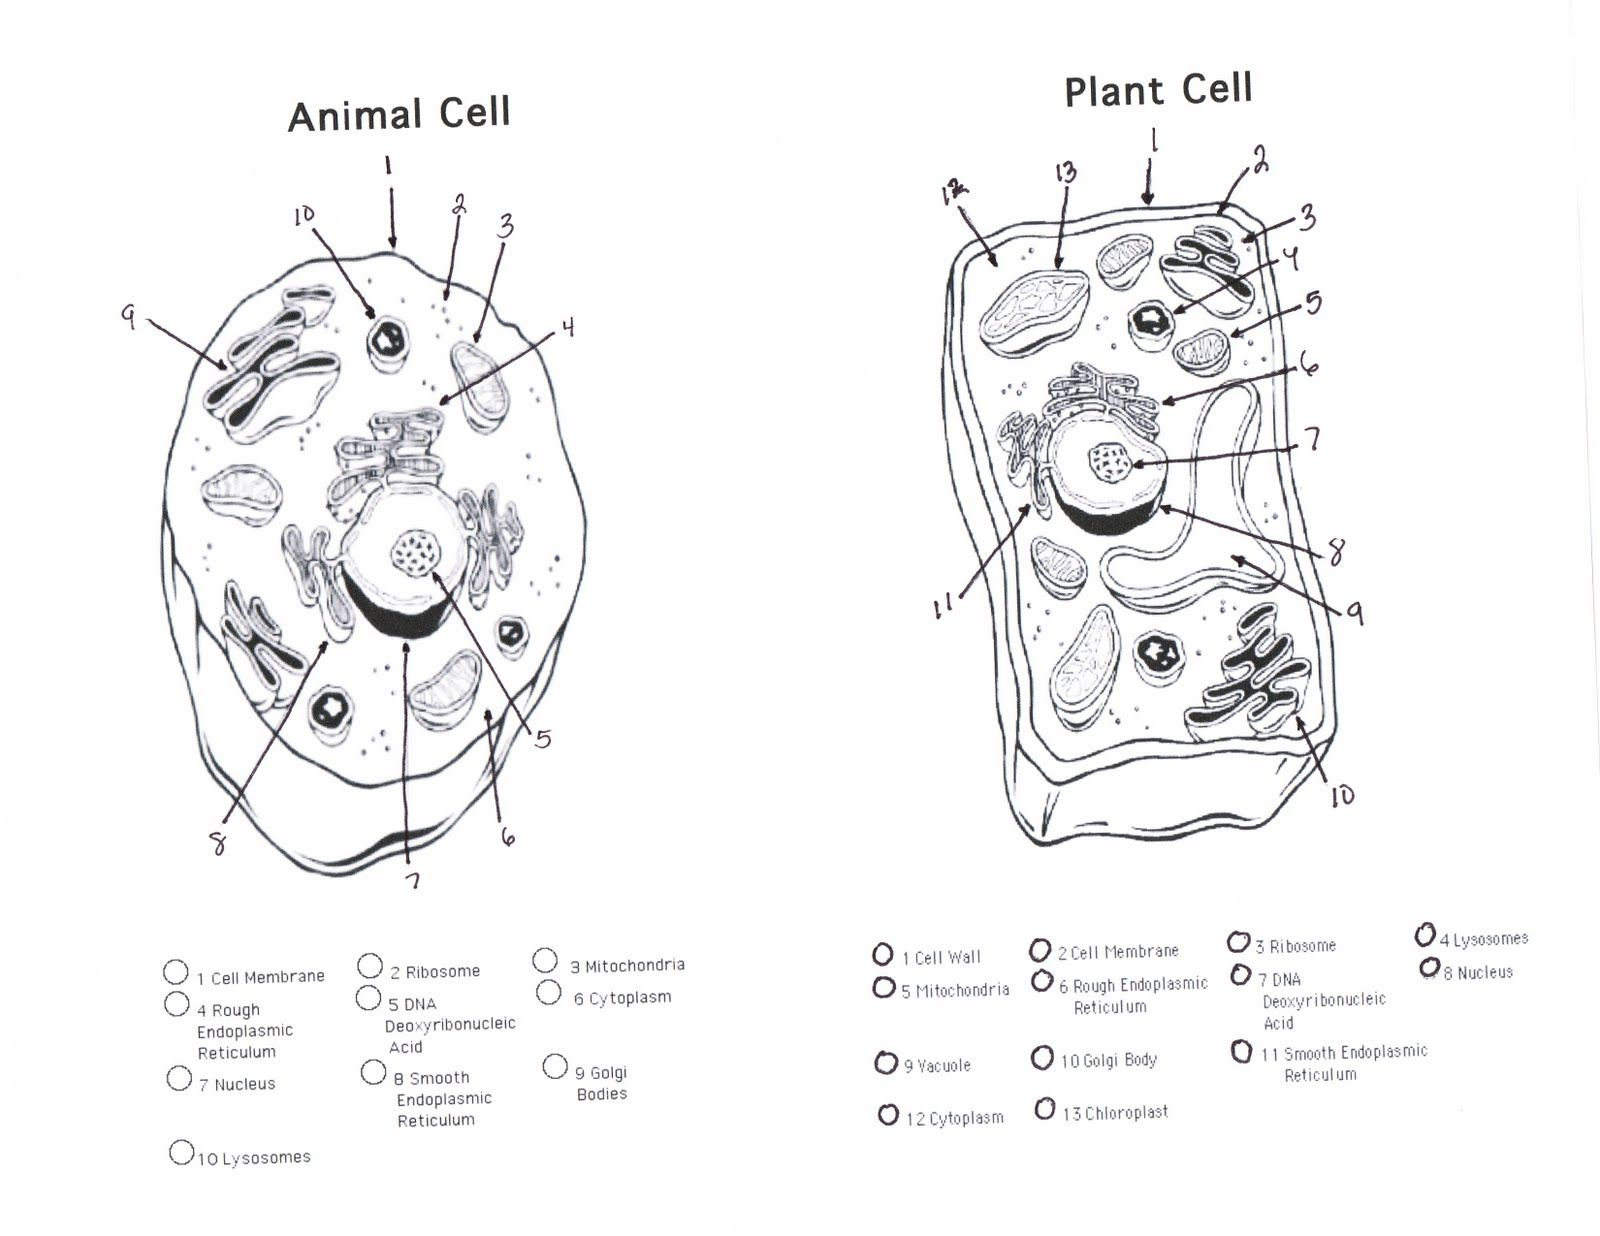 printable animal cell diagram with labels and functions